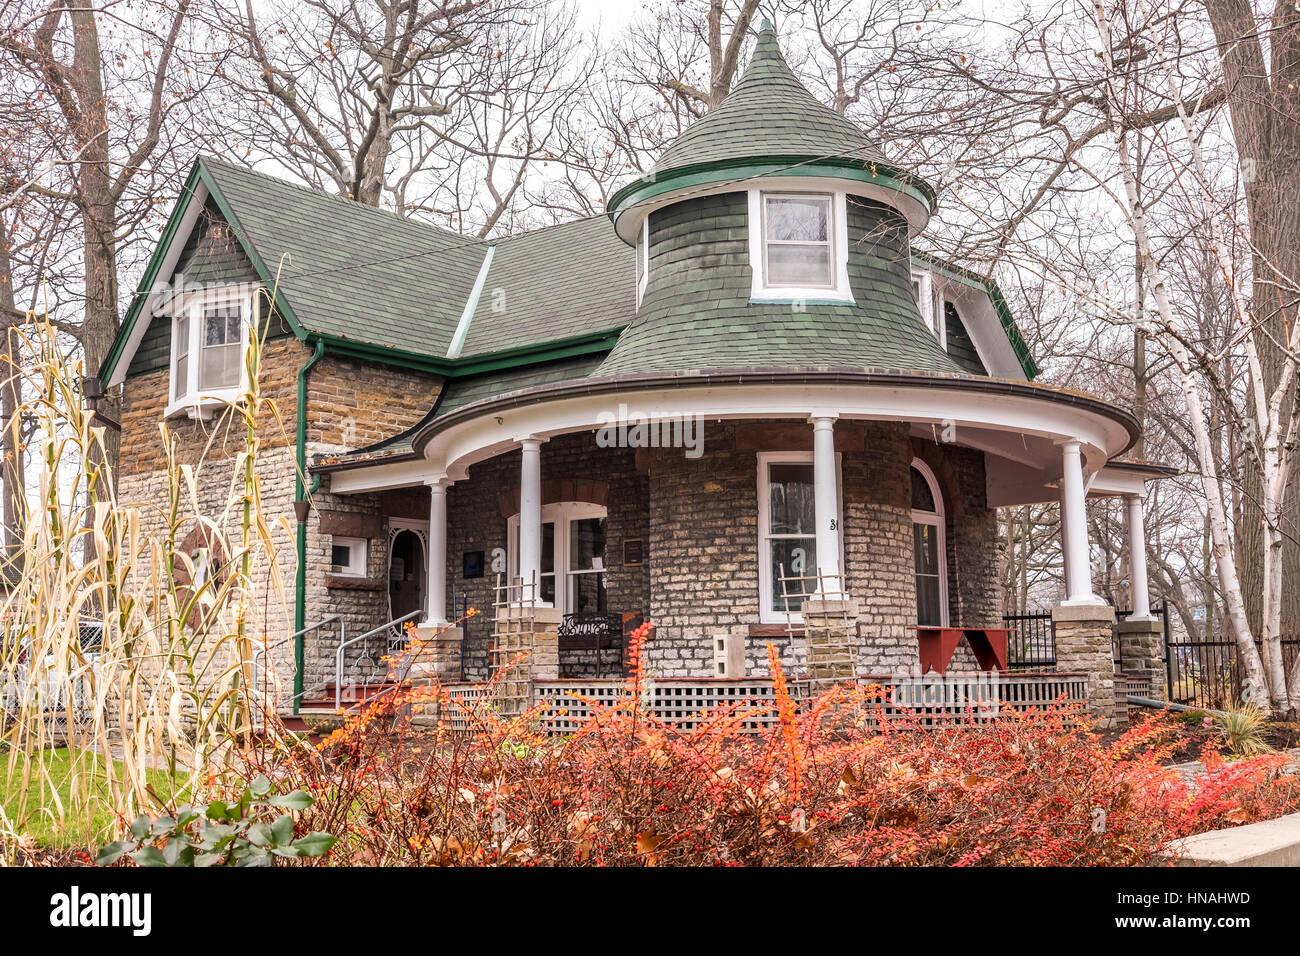 Kew Williams House Is A Two Storey Stone Structure Built In The Queen Anne Revival Style Located Beaches Neighbourhood Of Toronto Canada